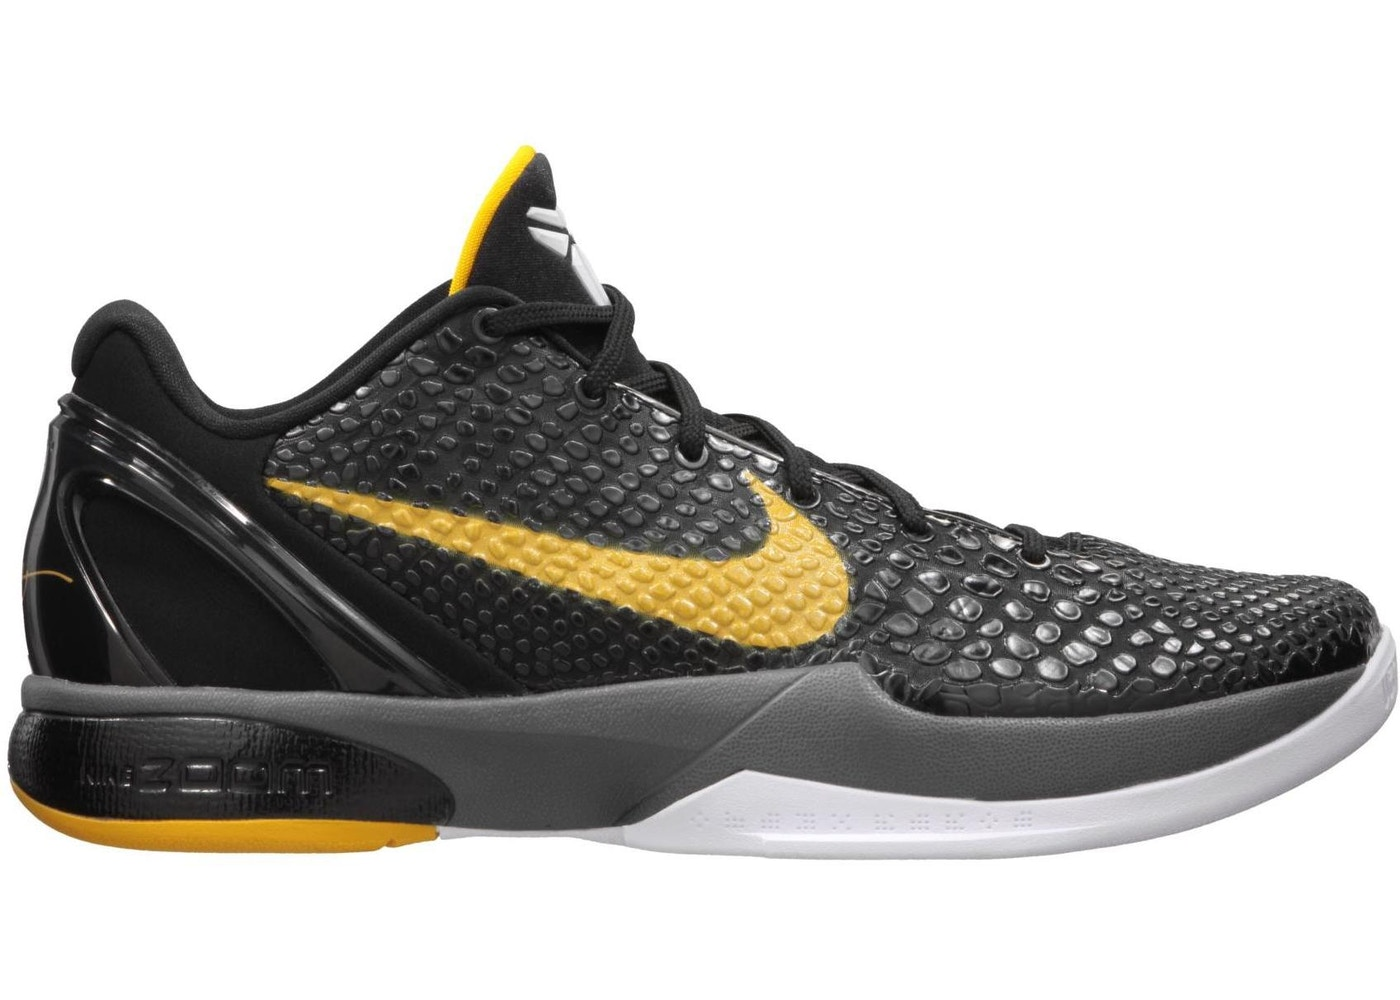 hot sale online 2cc1e 8237d Kobe 6 Black Del Sol - 429659-002